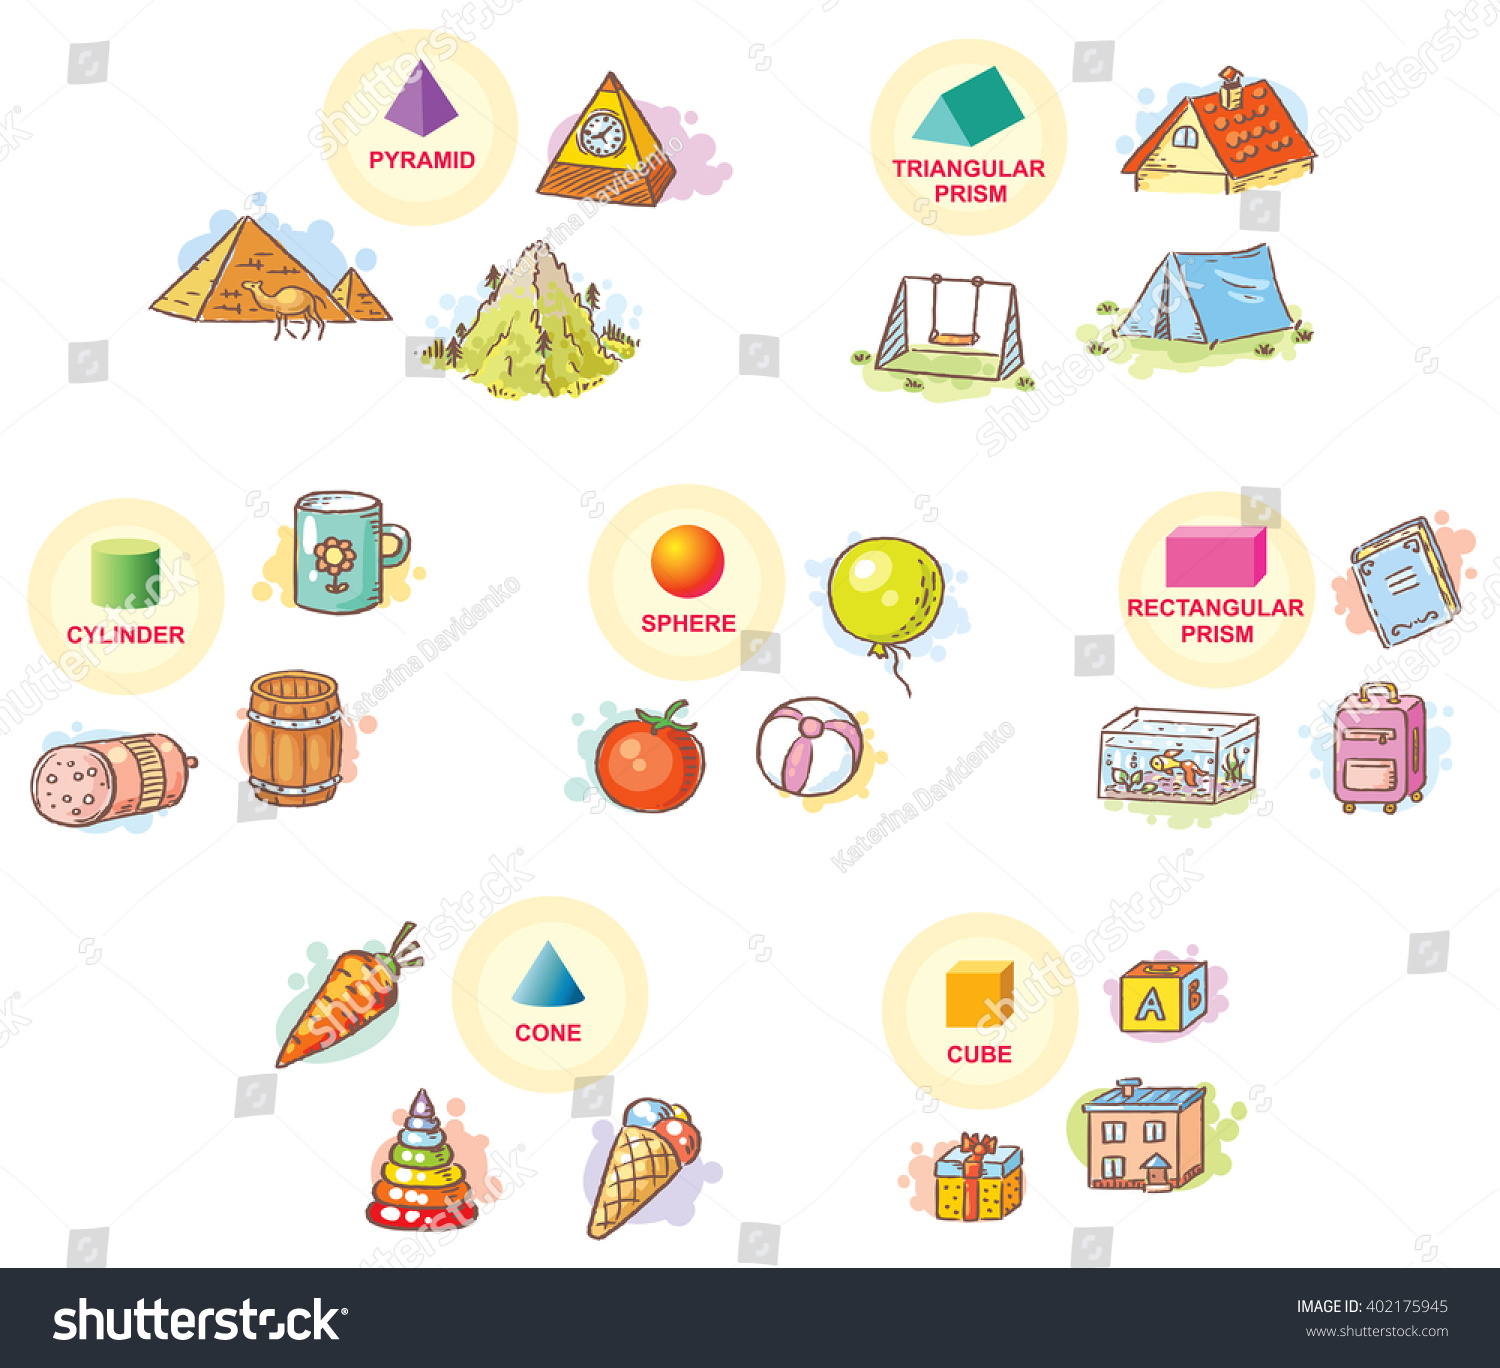 3d Shapes Example Objects Everyday Life Stock Vector